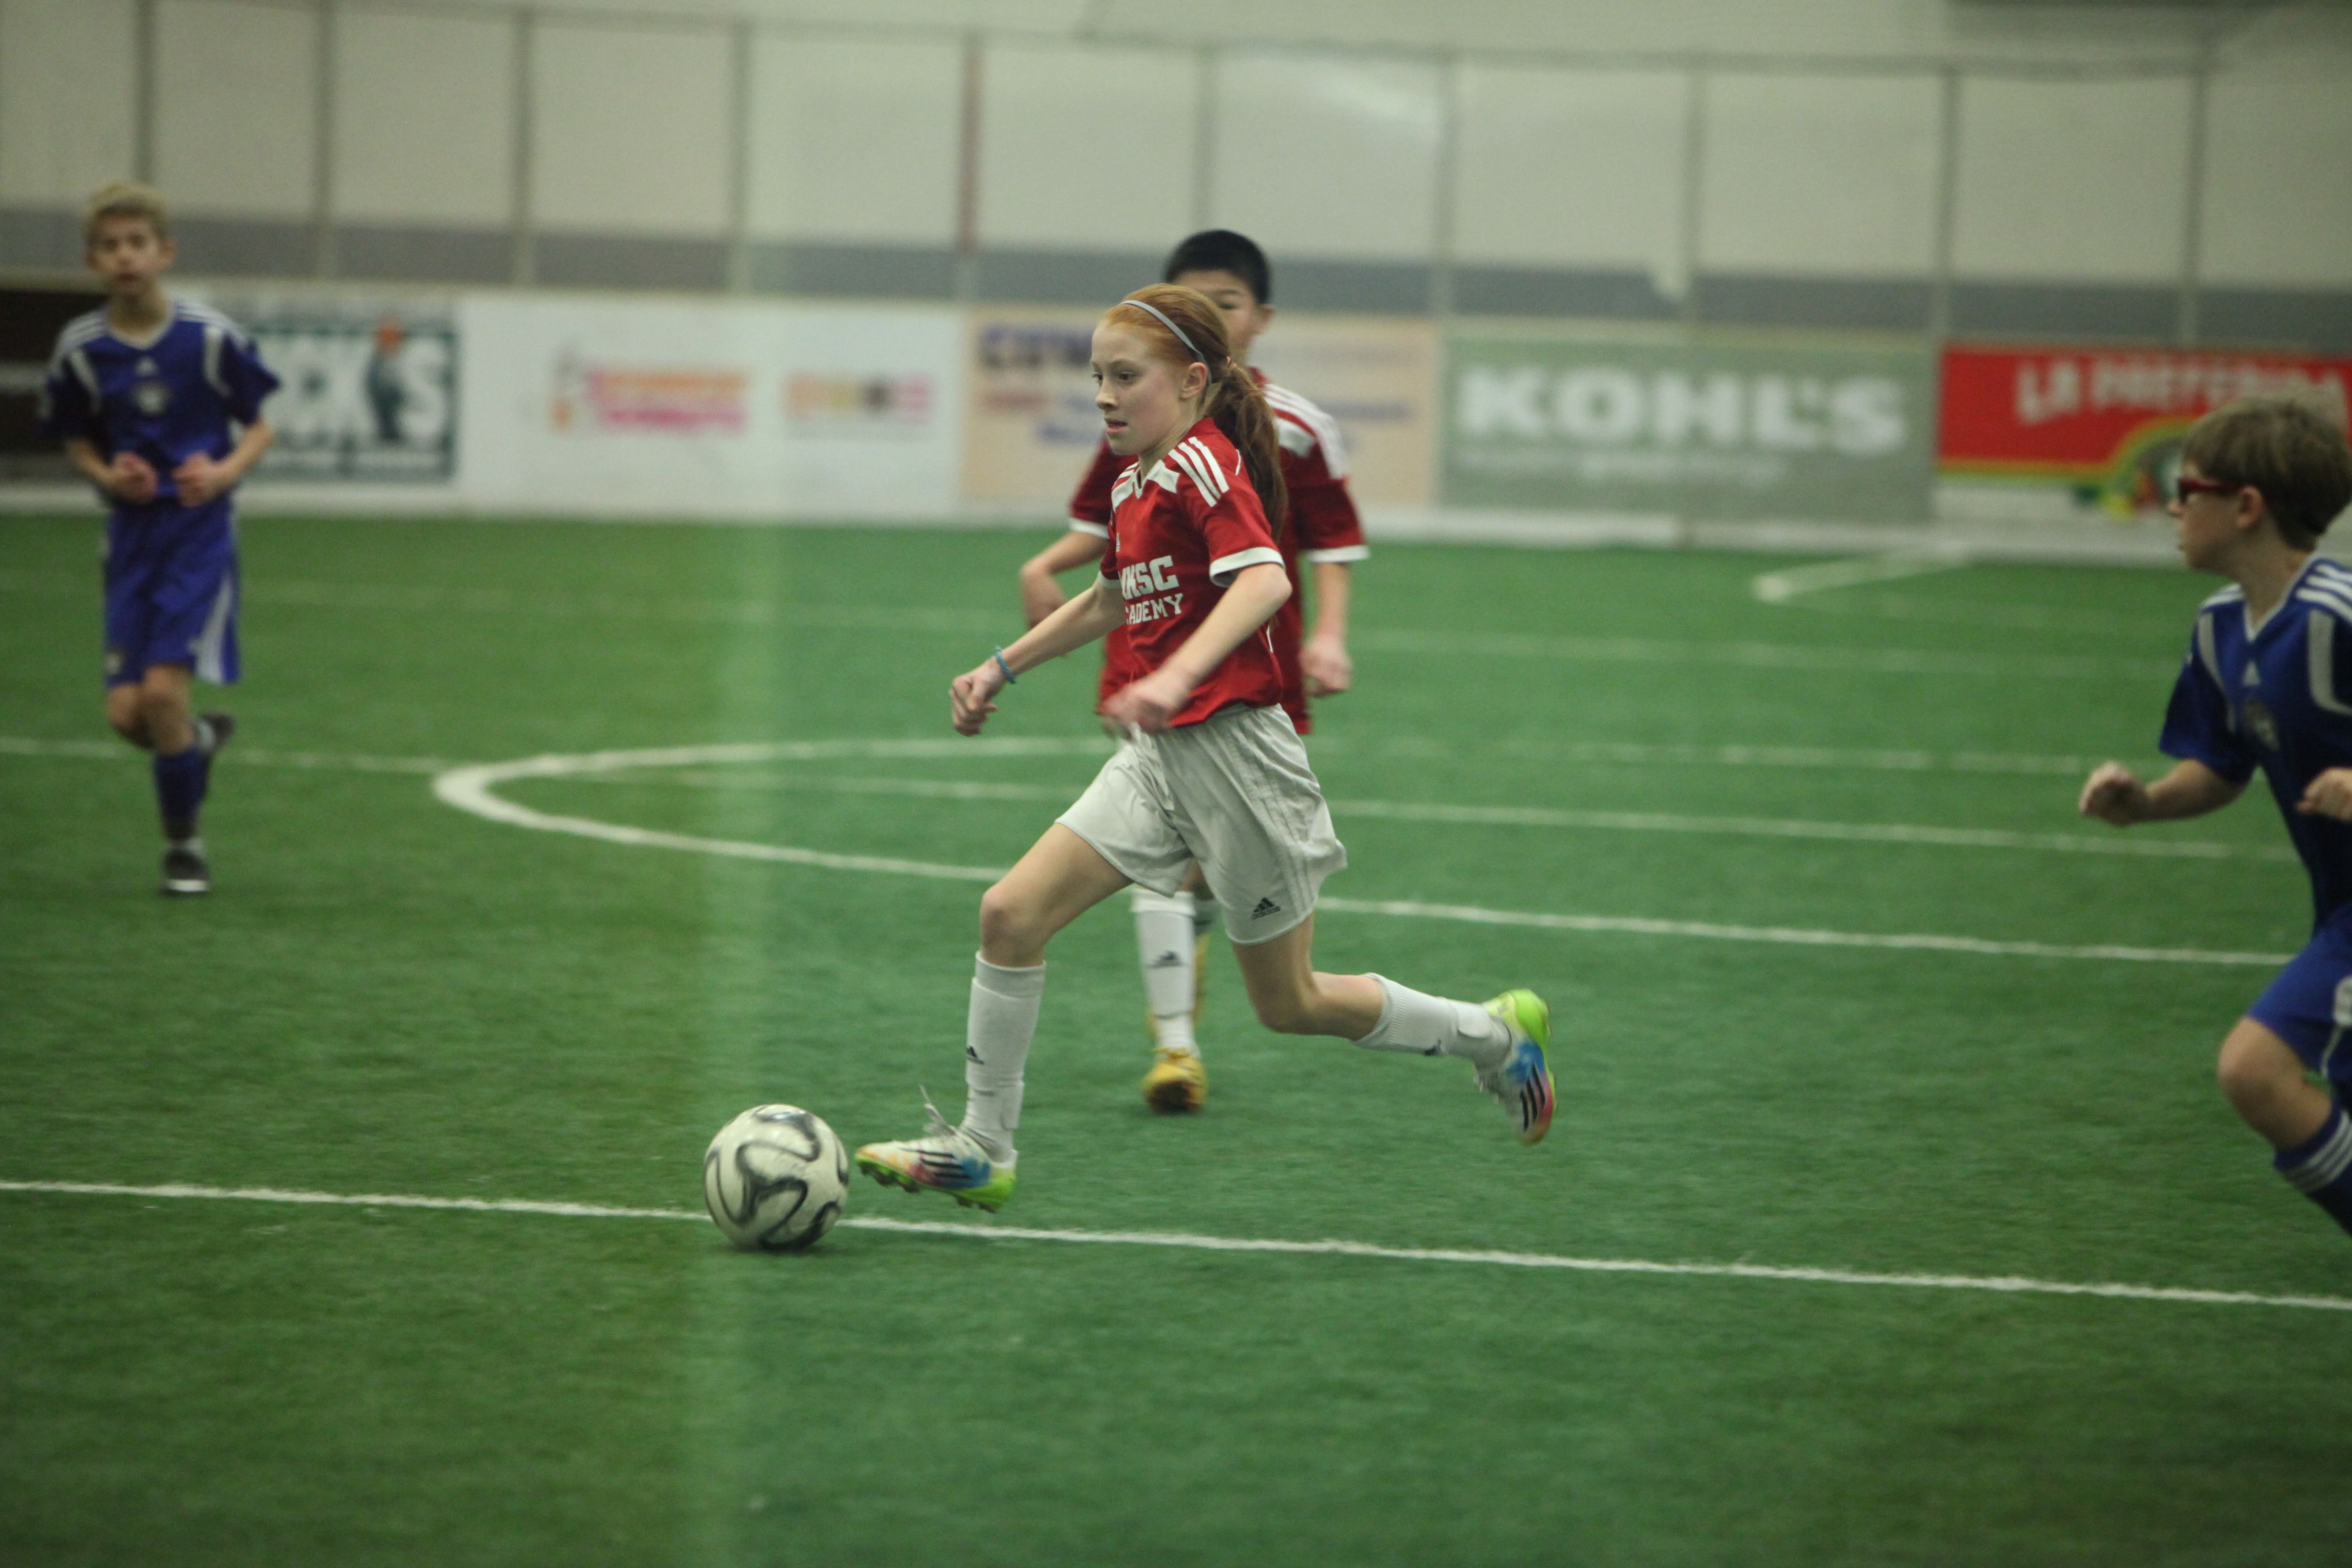 Photos from our Winter Indoor Tournament have been posted